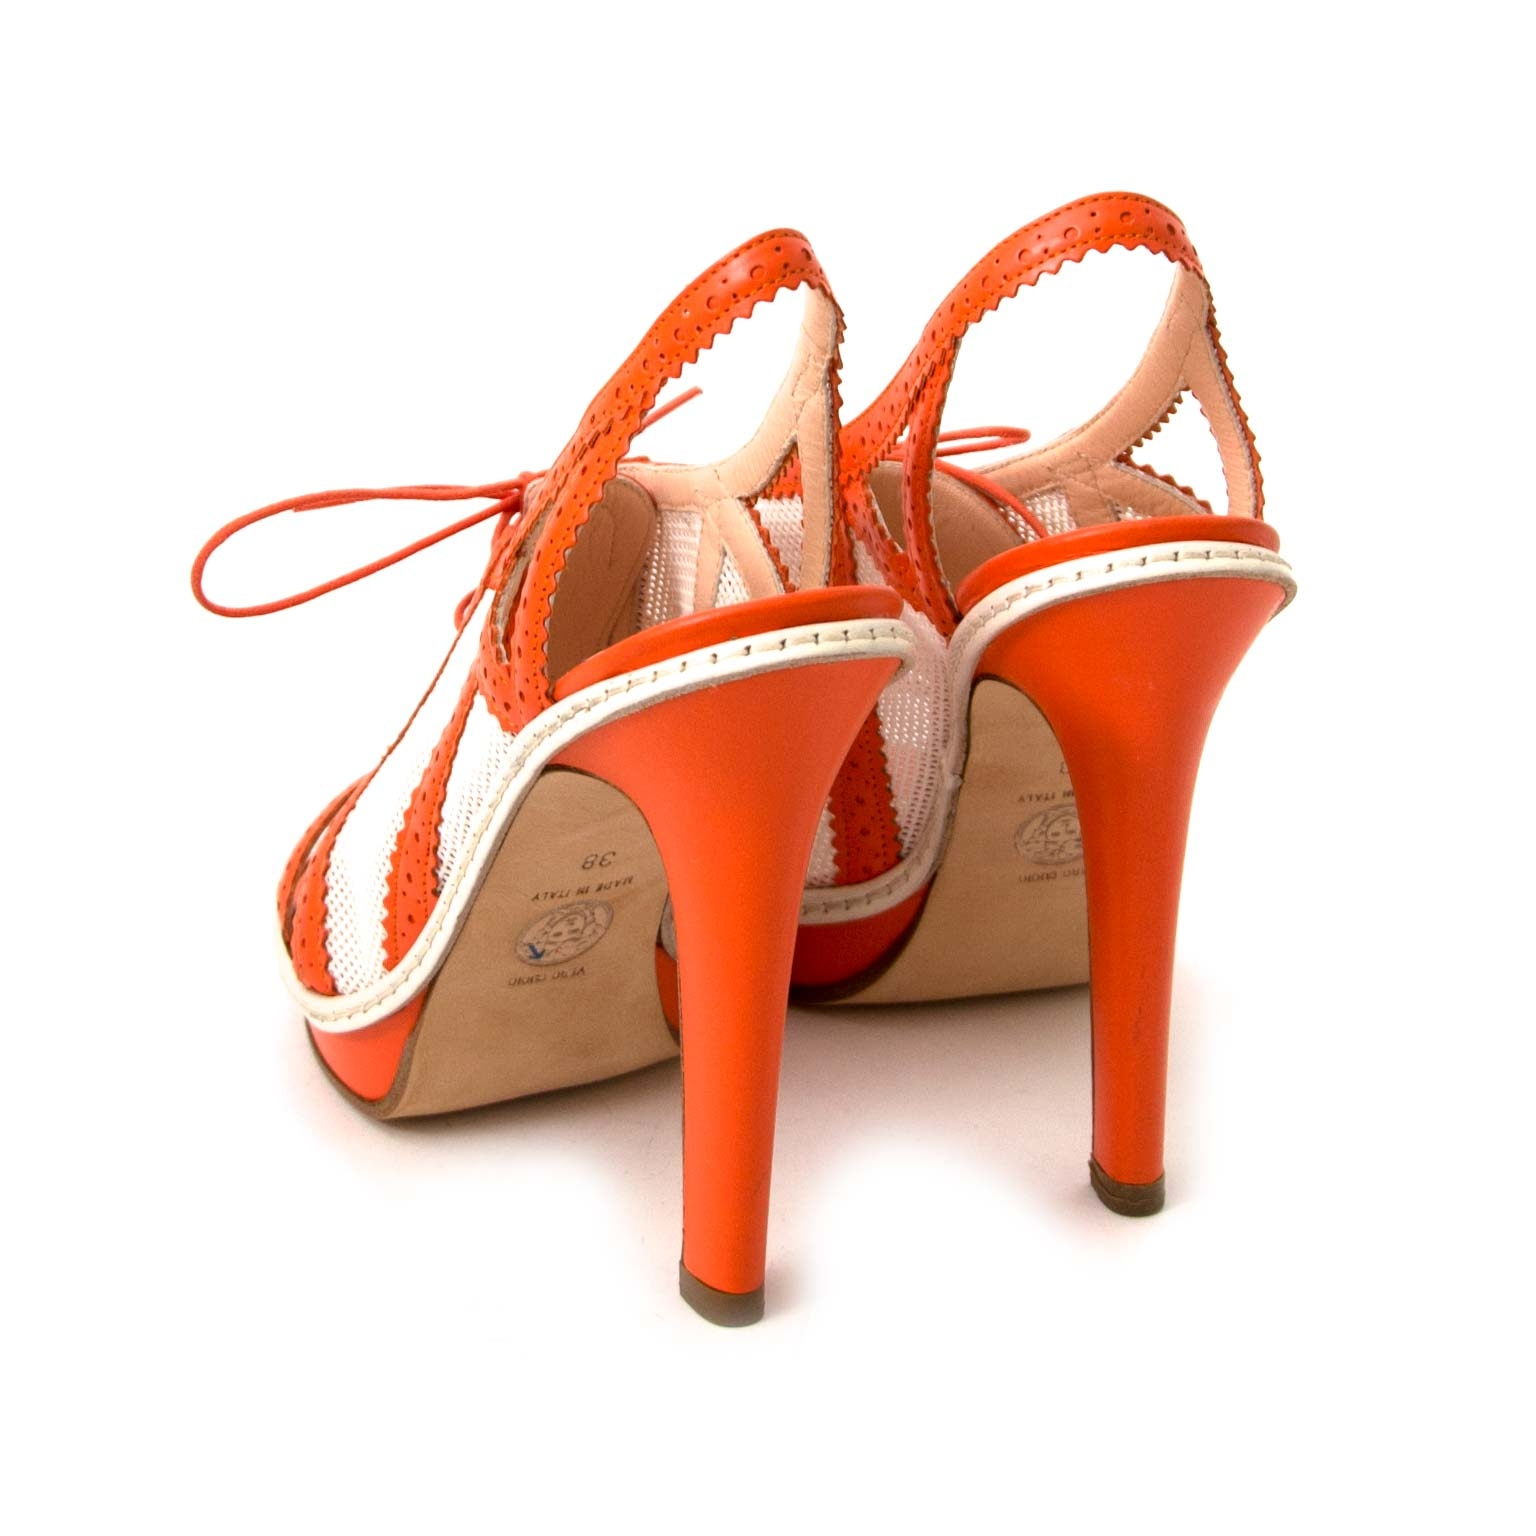 Versace Orange And White Canvas Leather Heeled Sandals online for sale at Labellov